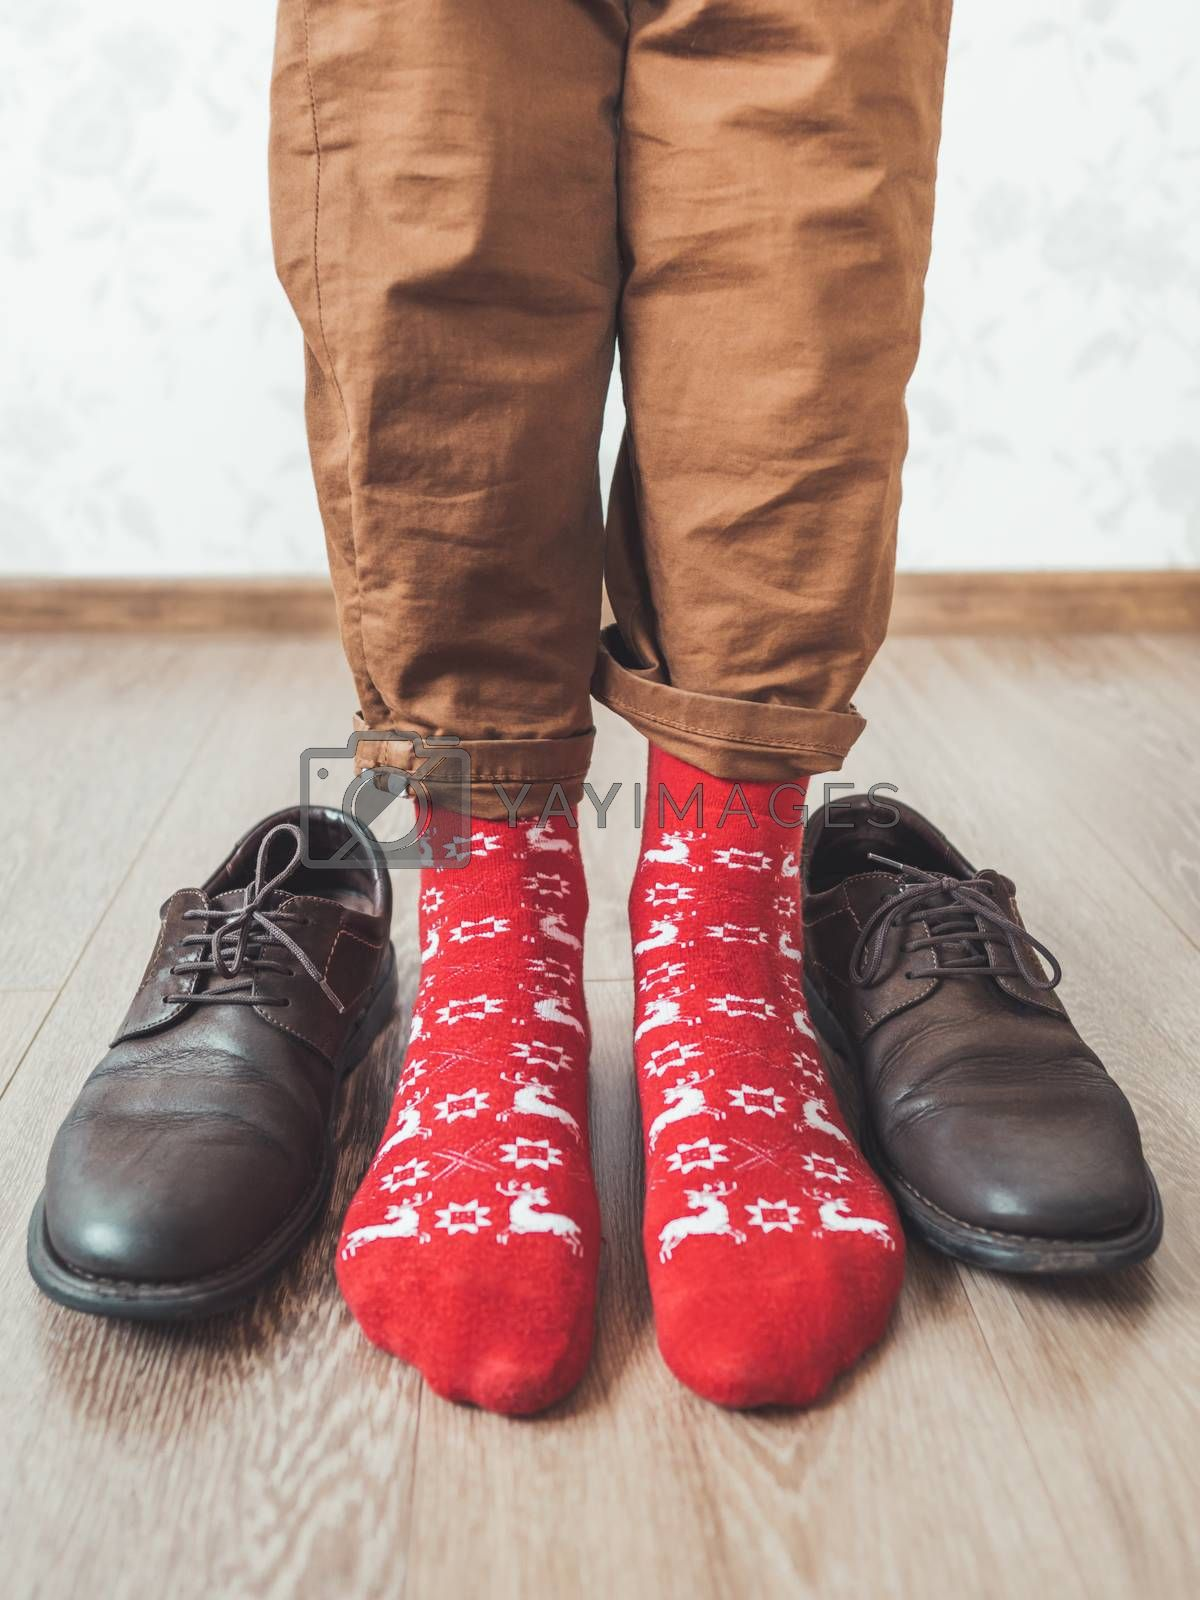 Royalty free image of Young man in chinos trousers and bright red socks with reindeers on them is ready to wear sude shoes. Scandinavian pattern. Winter holiday spirit. Casual outfit for New Year and Christmas celebration. by aksenovko